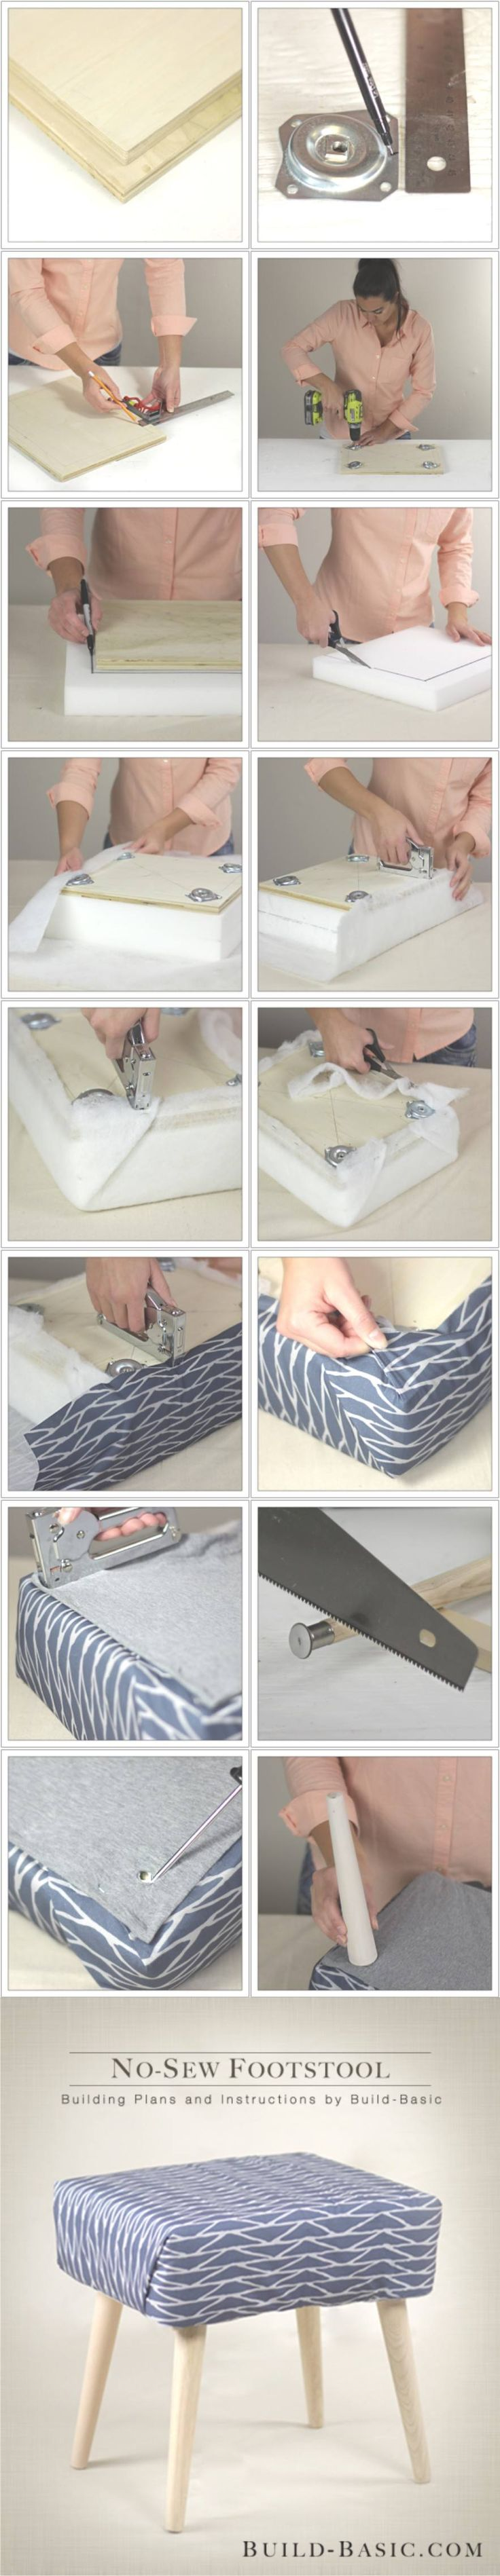 DIY No Sew Footstool - build-basic.com - Taburete DIY sin coser